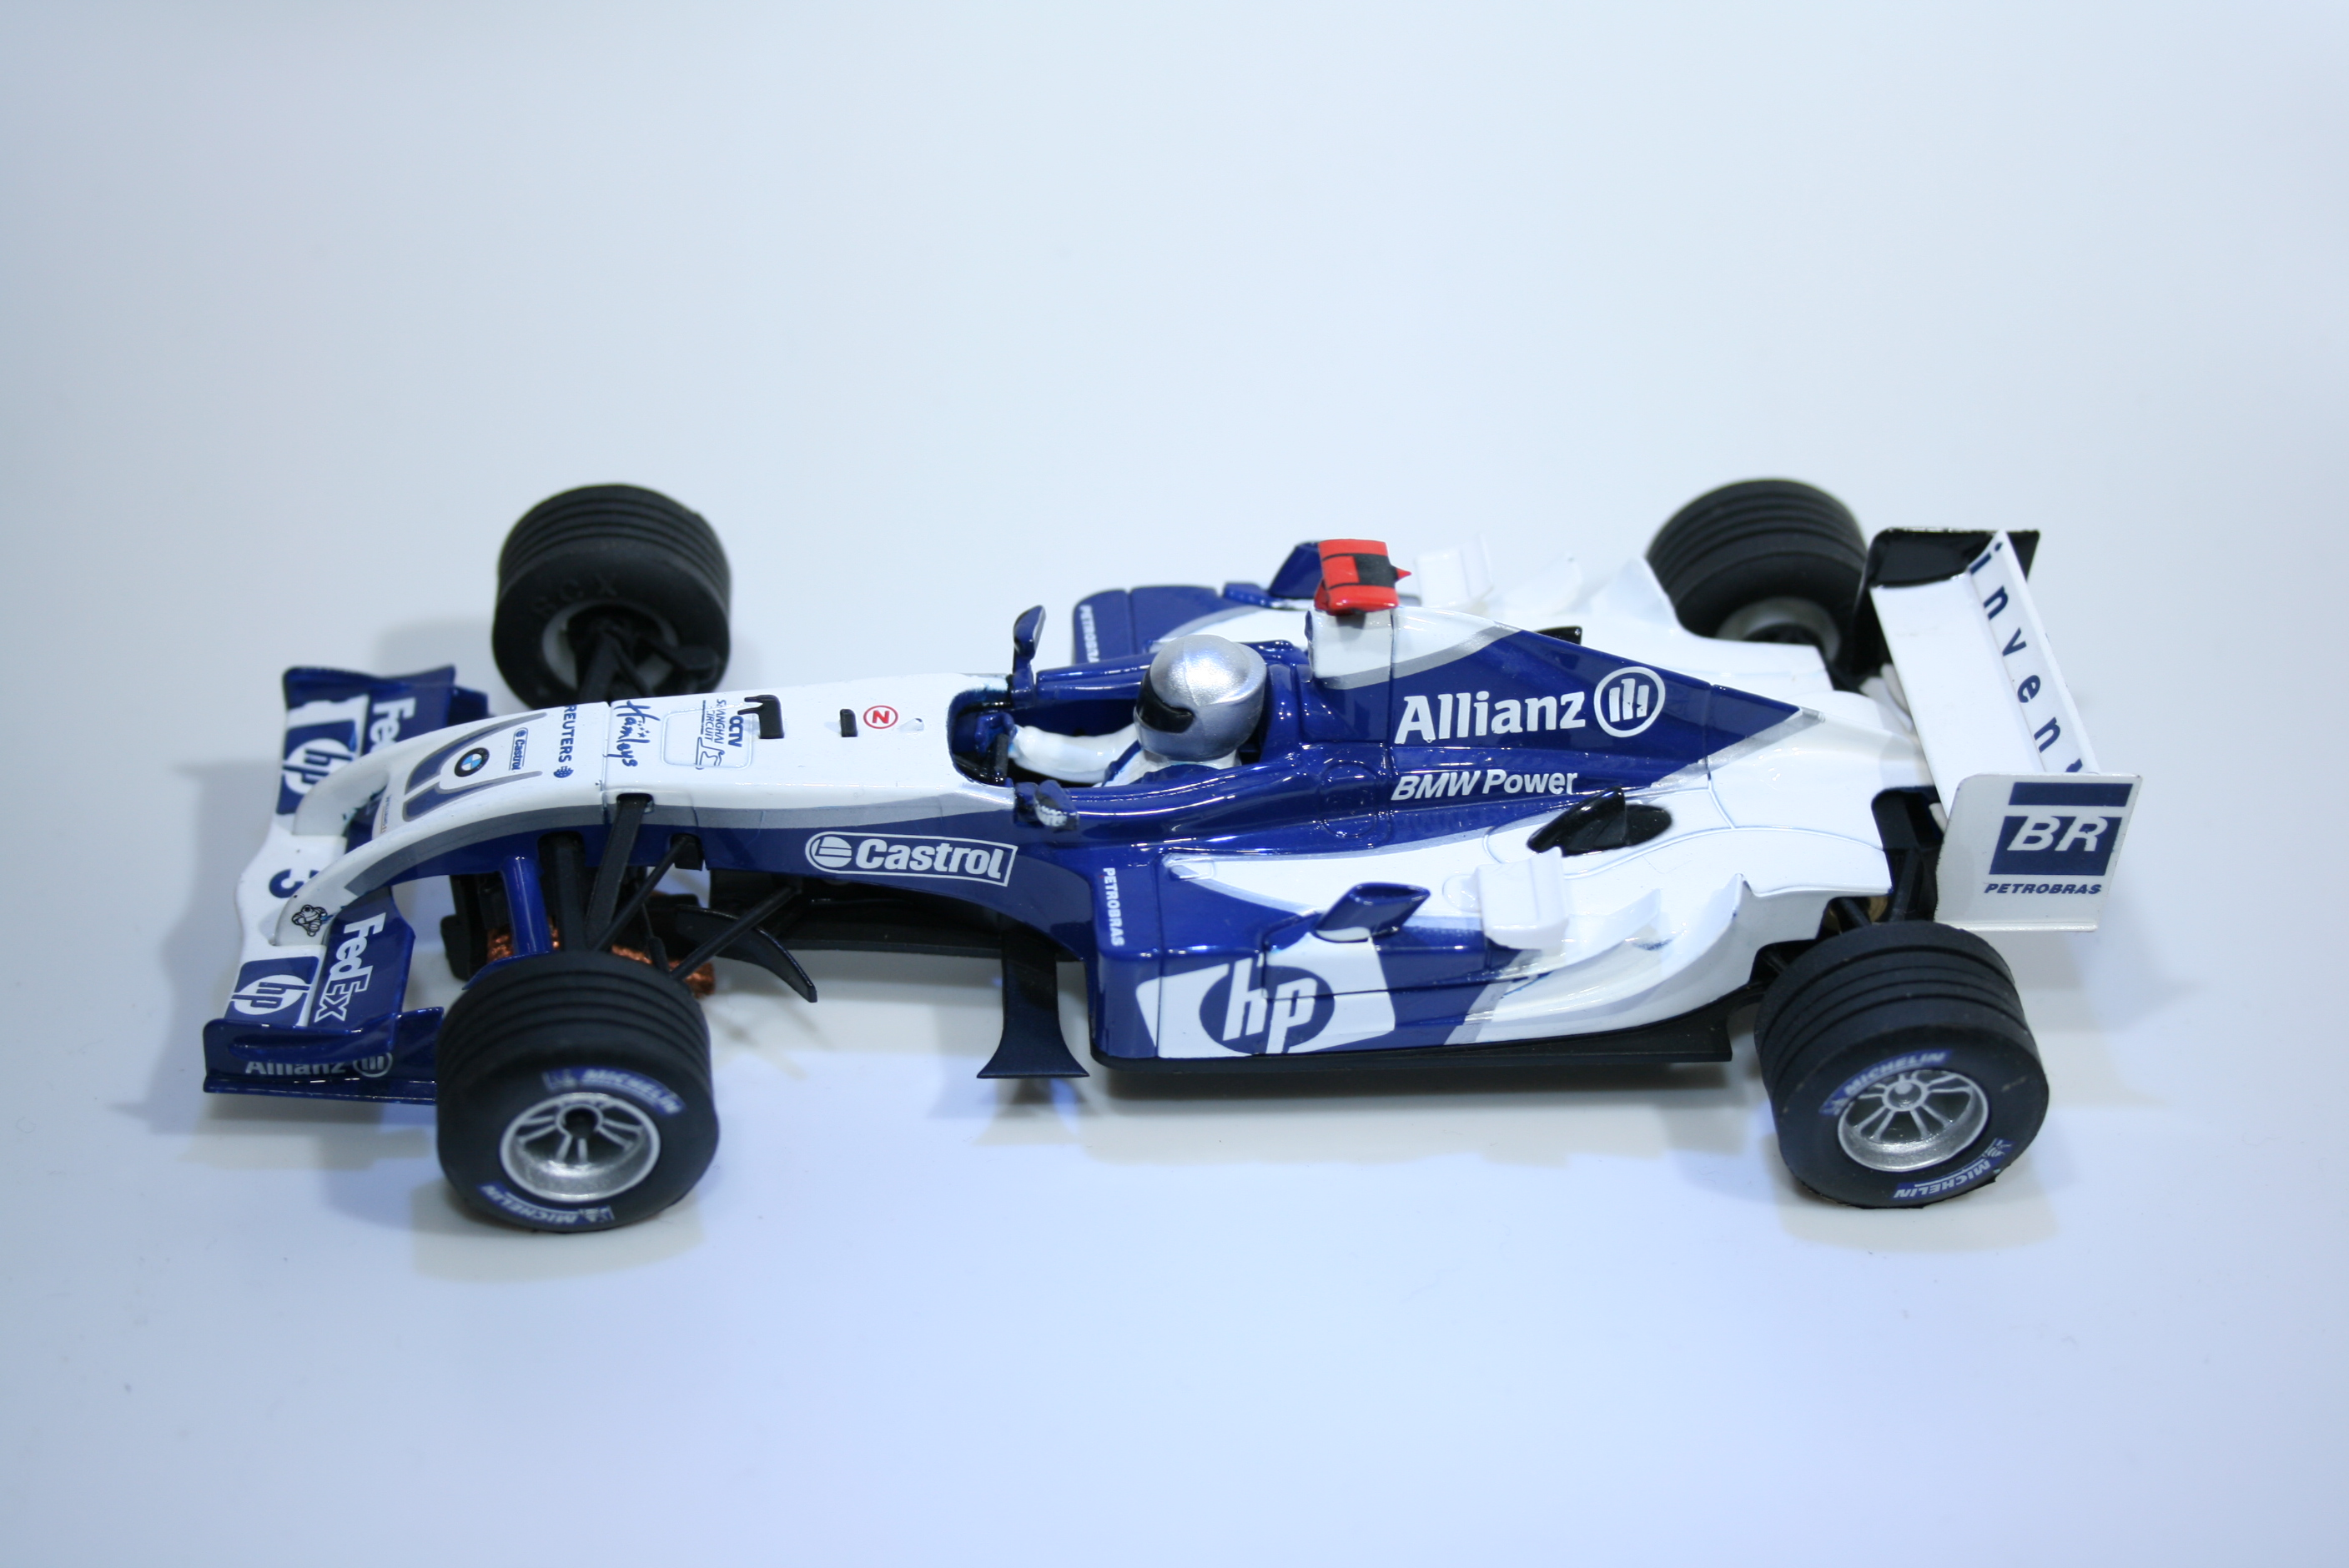 138 Williams FW26 2004 J P Montoya SCX 61670 2004